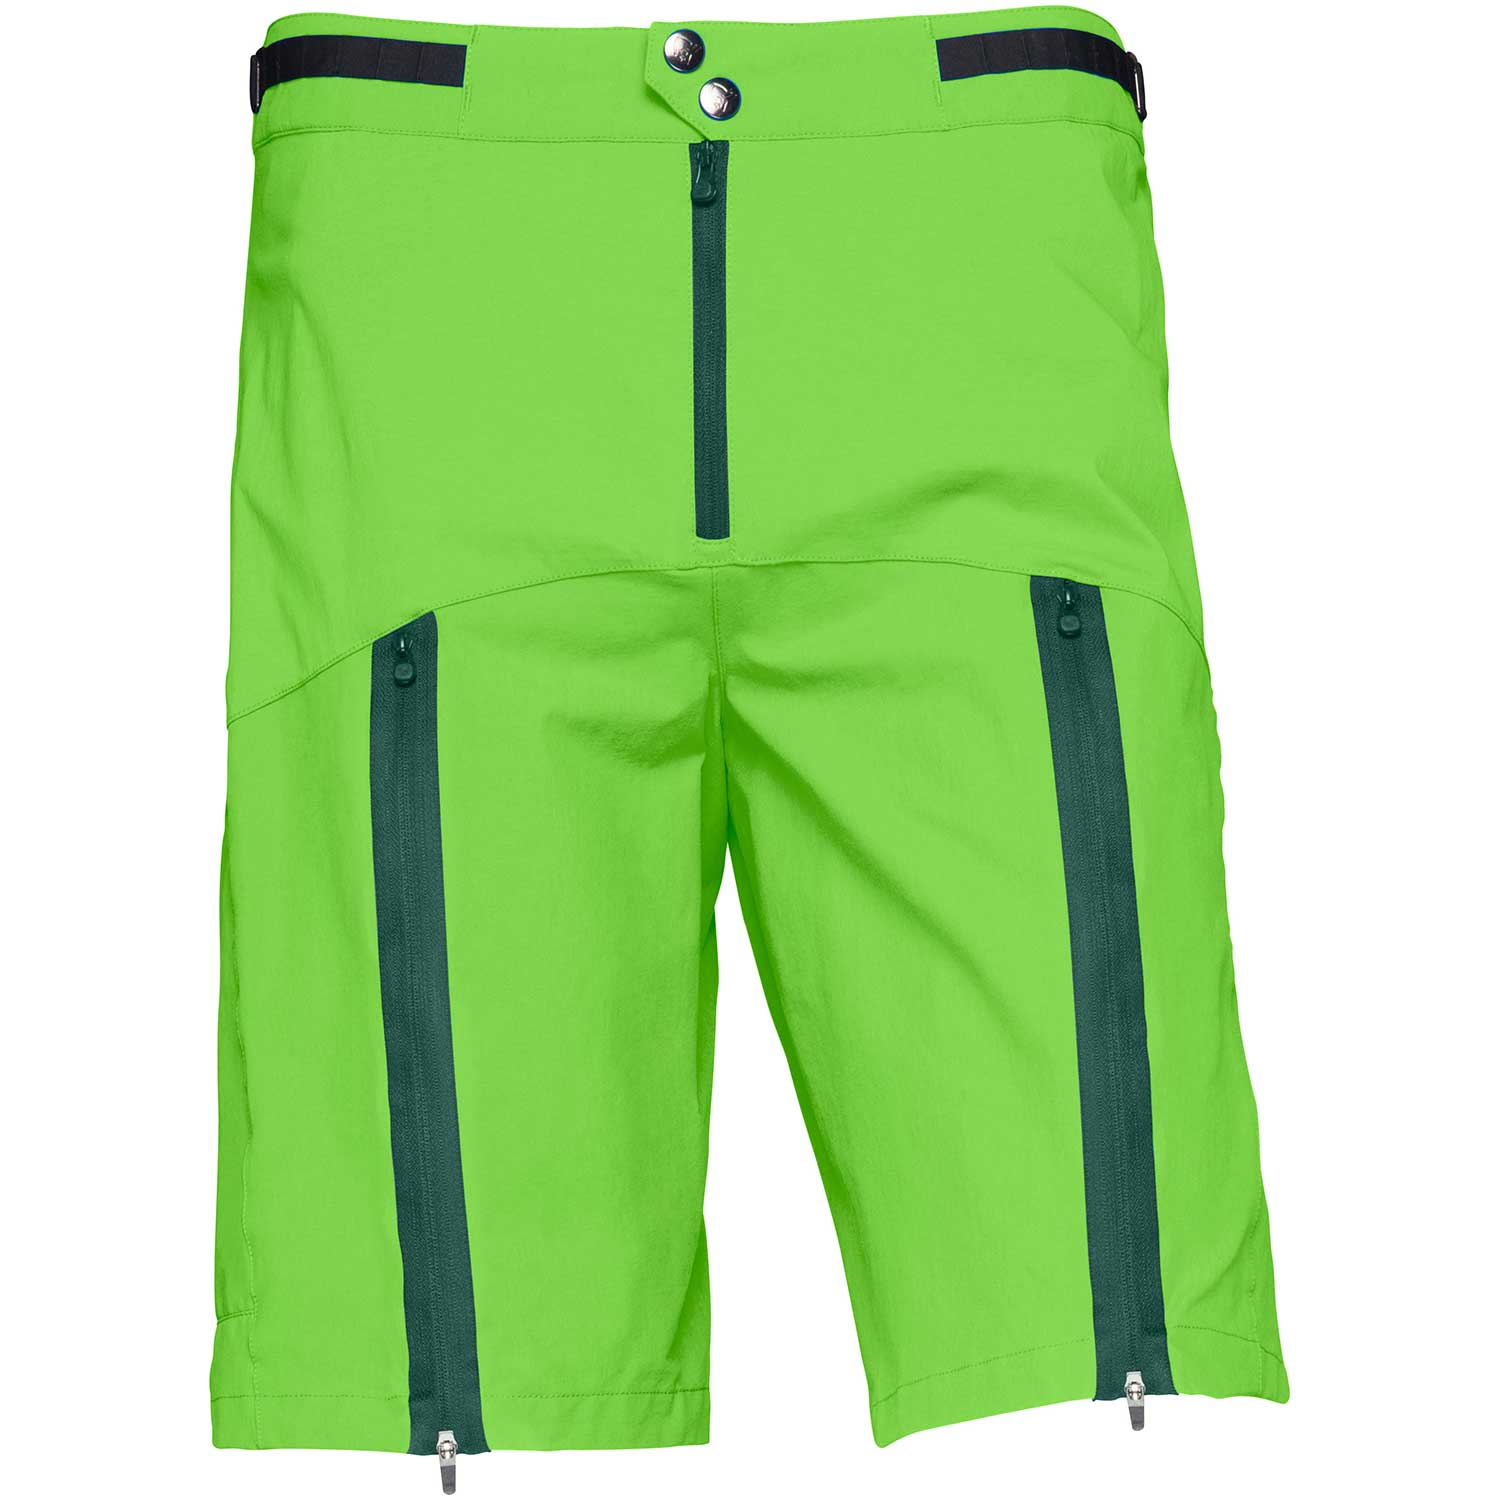 fjora super light weight Shorts (M)